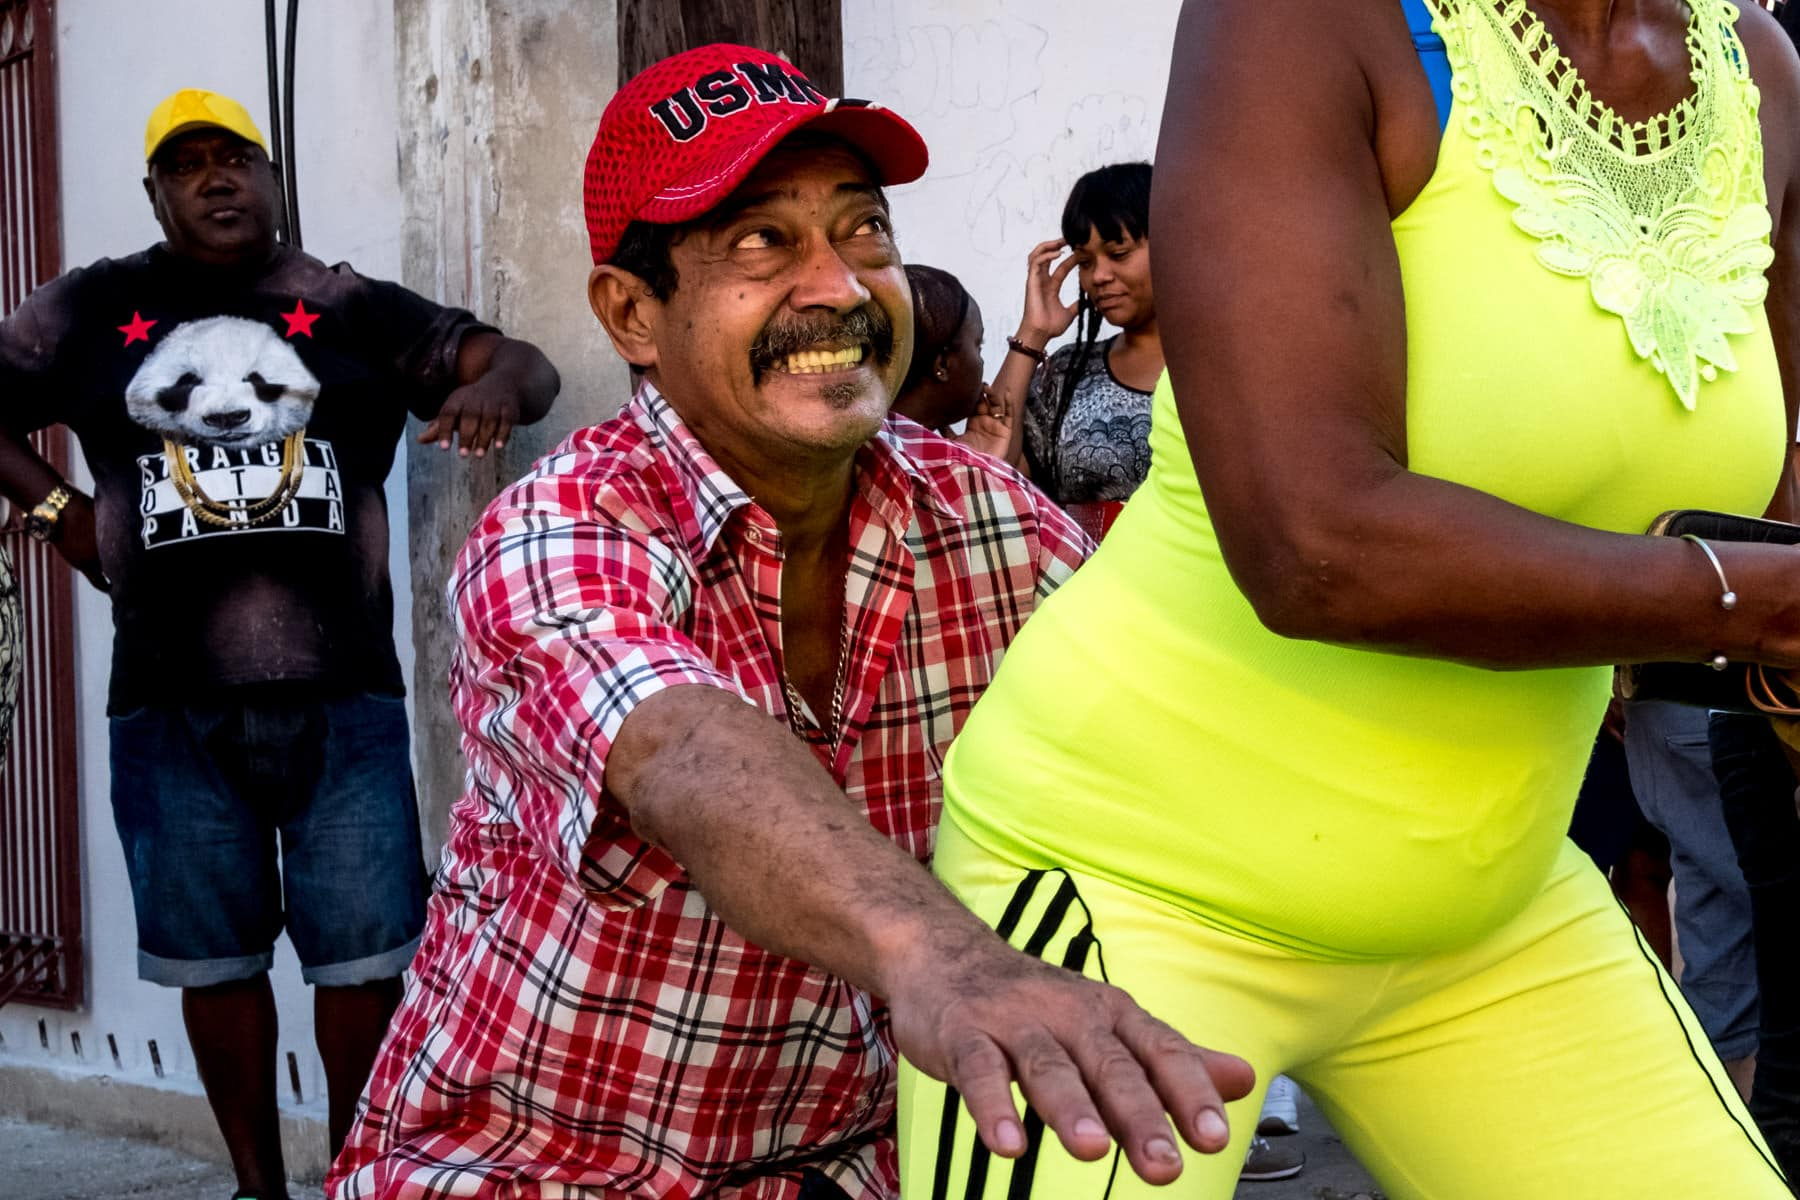 A Cuban man dancing with a women in a bright green/ yellow outfit on the steets of havana